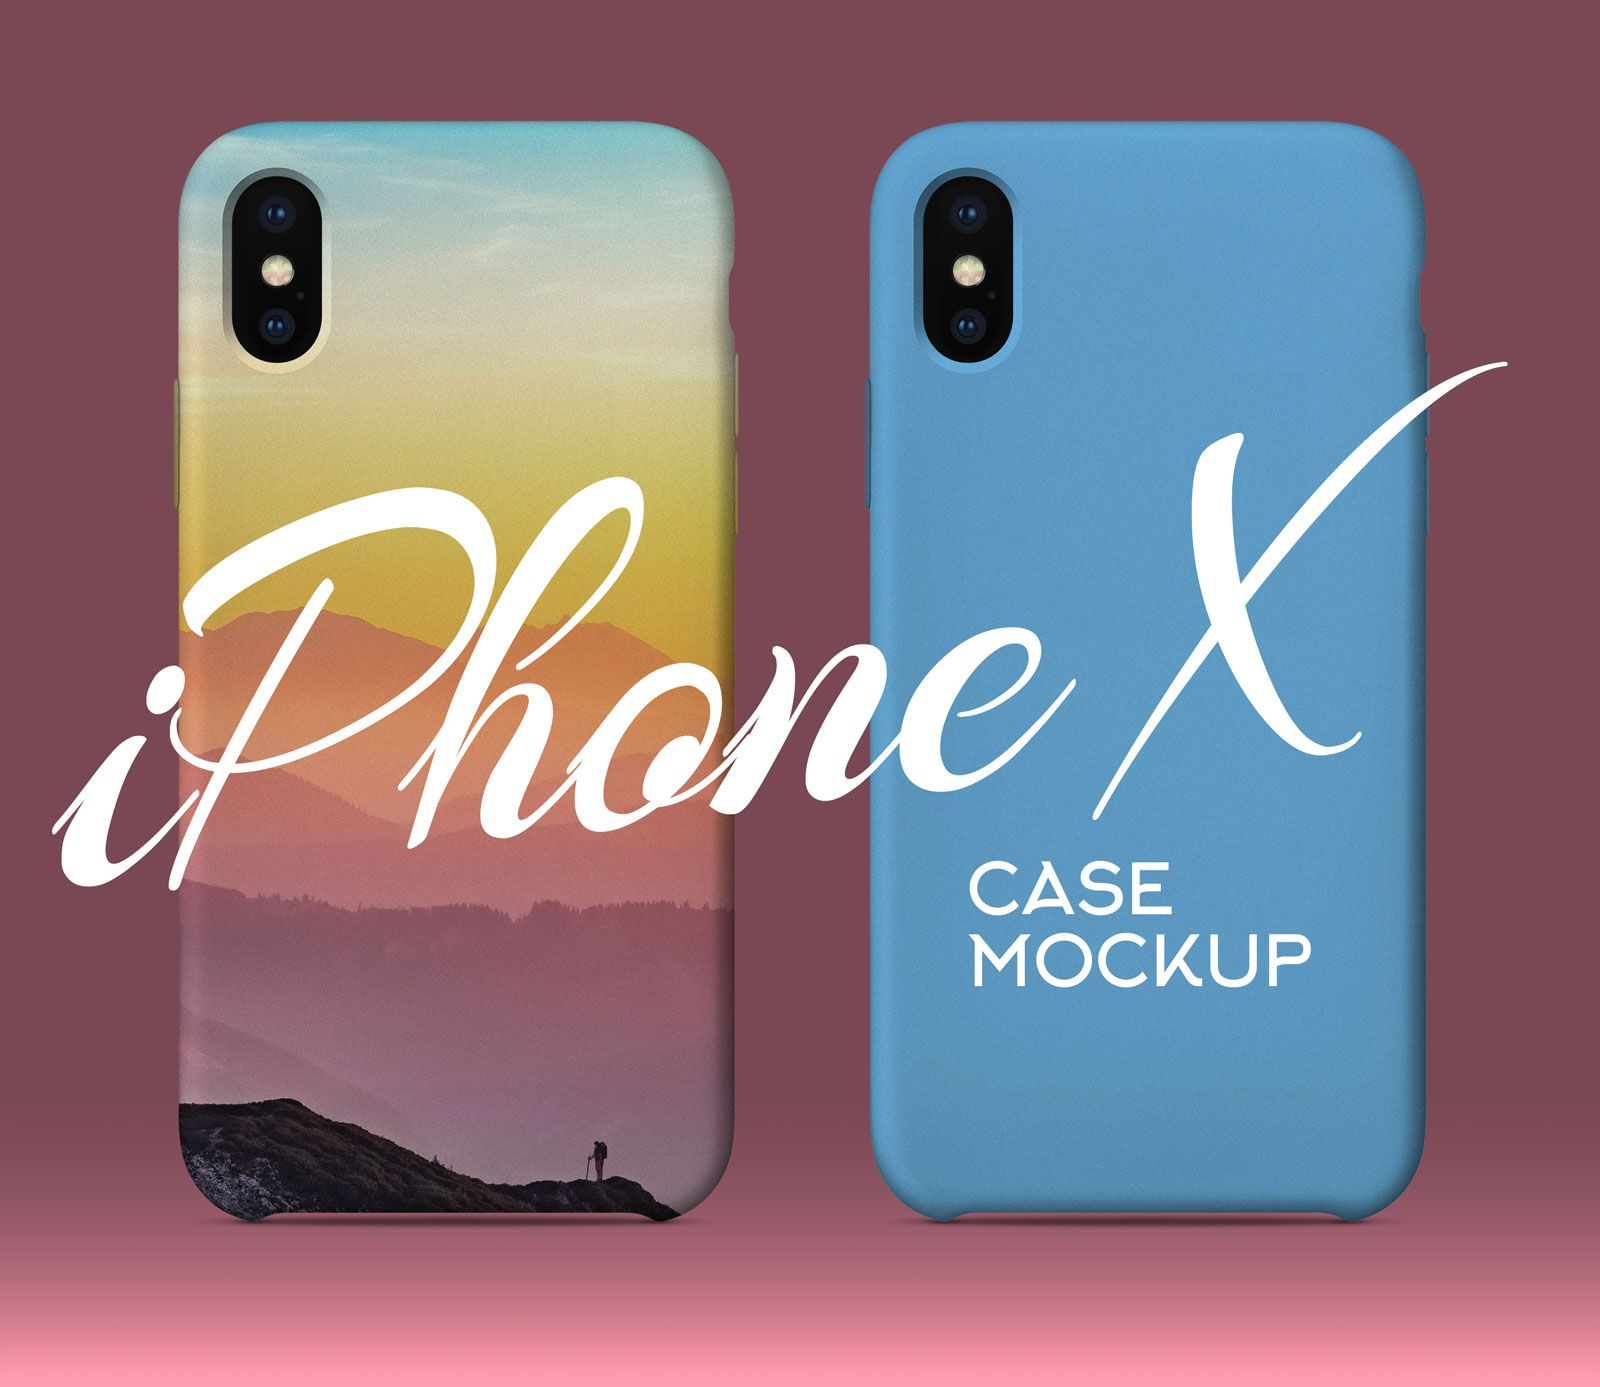 Download Presenting You A Handy Iphone X Case Mockup To Showcase Iphone X Cover Design Artistic Back Covers For Online Stores Free Iphone Iphone Mockup Iphone Cases